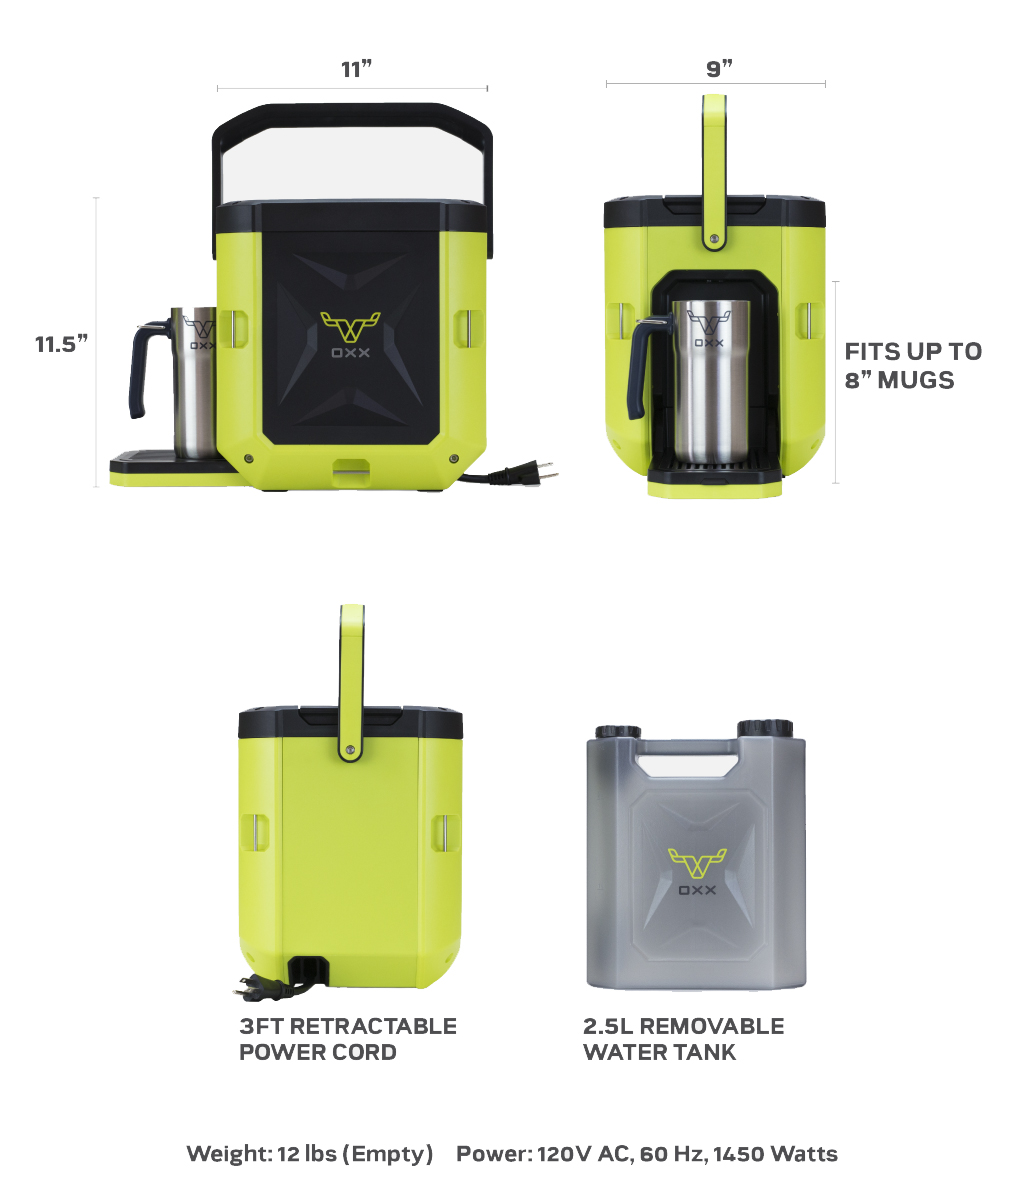 COFFEEBOXX Jobsite Coffee Maker in Hi Viz Green